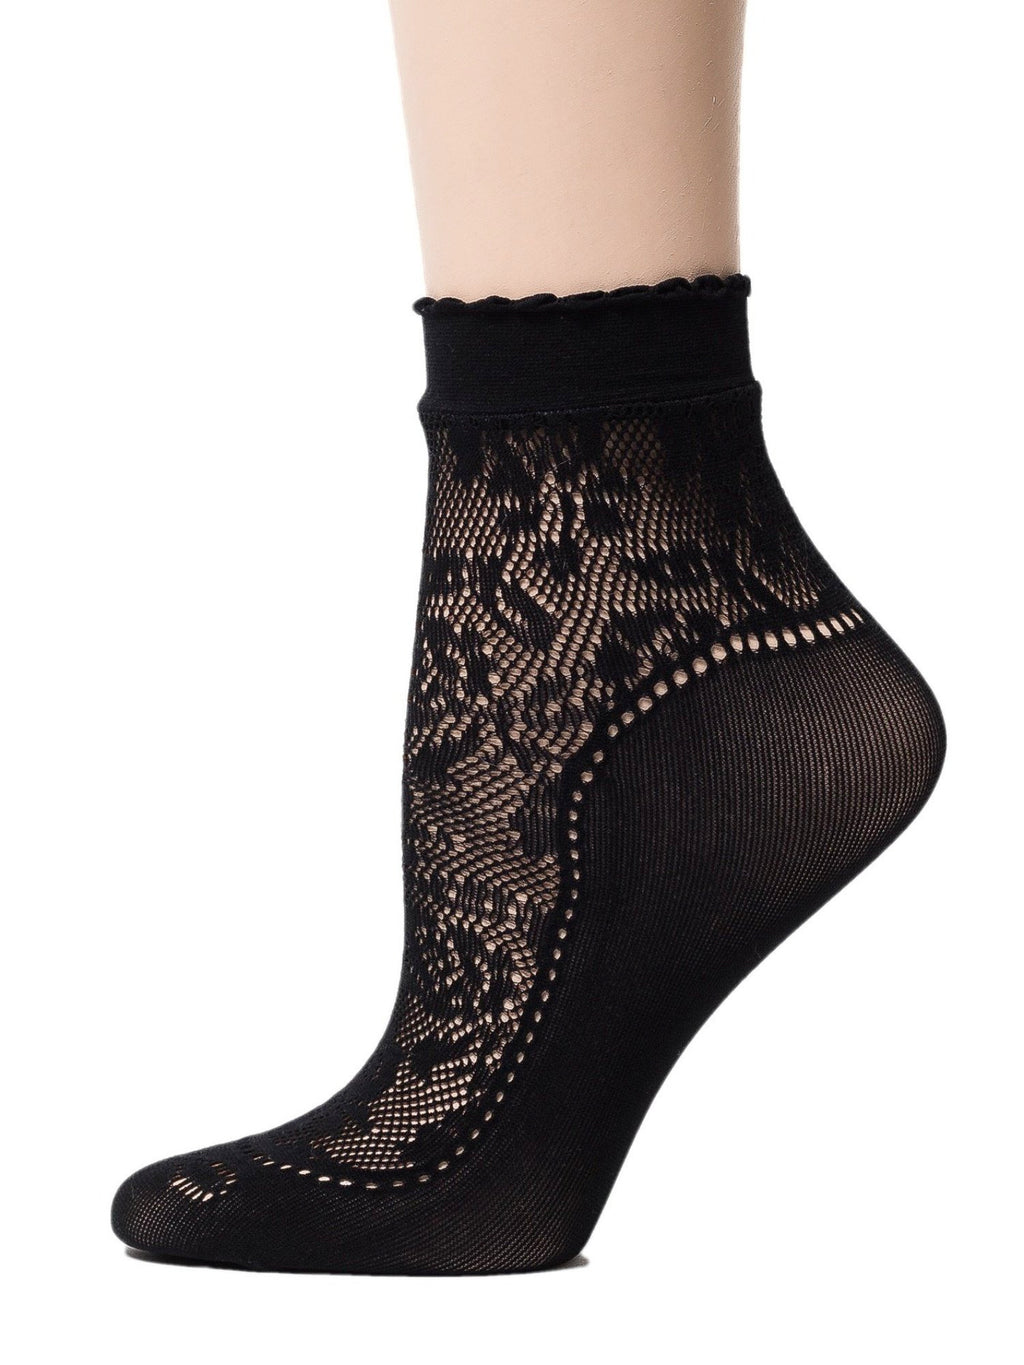 Midnight Black Mesh Socks - Global Trendz Fashion®